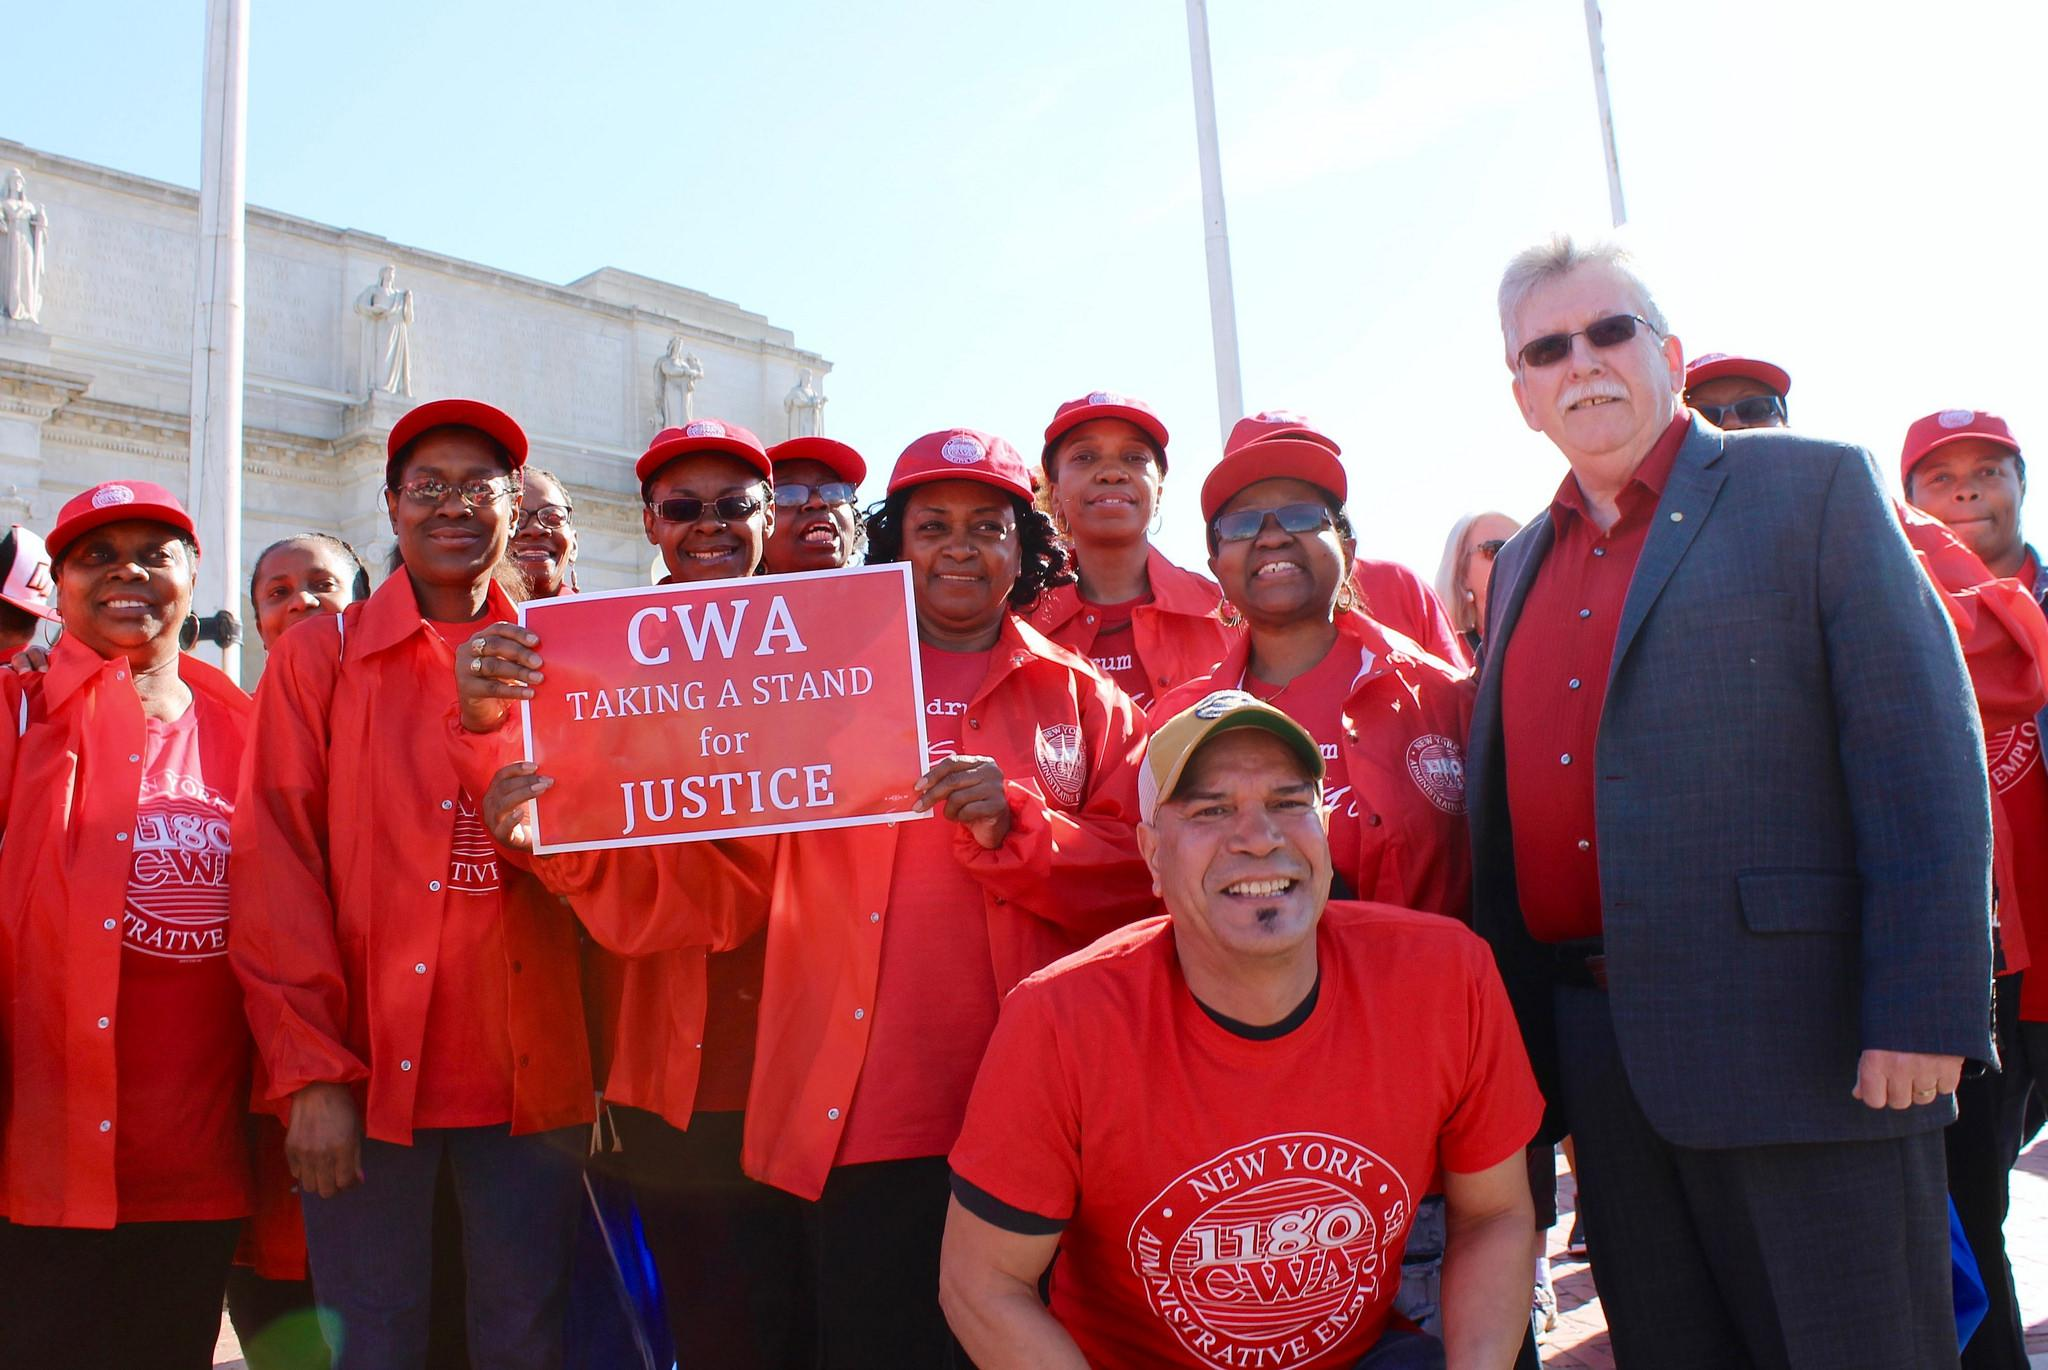 Chris Shelton with CWA Local 1180